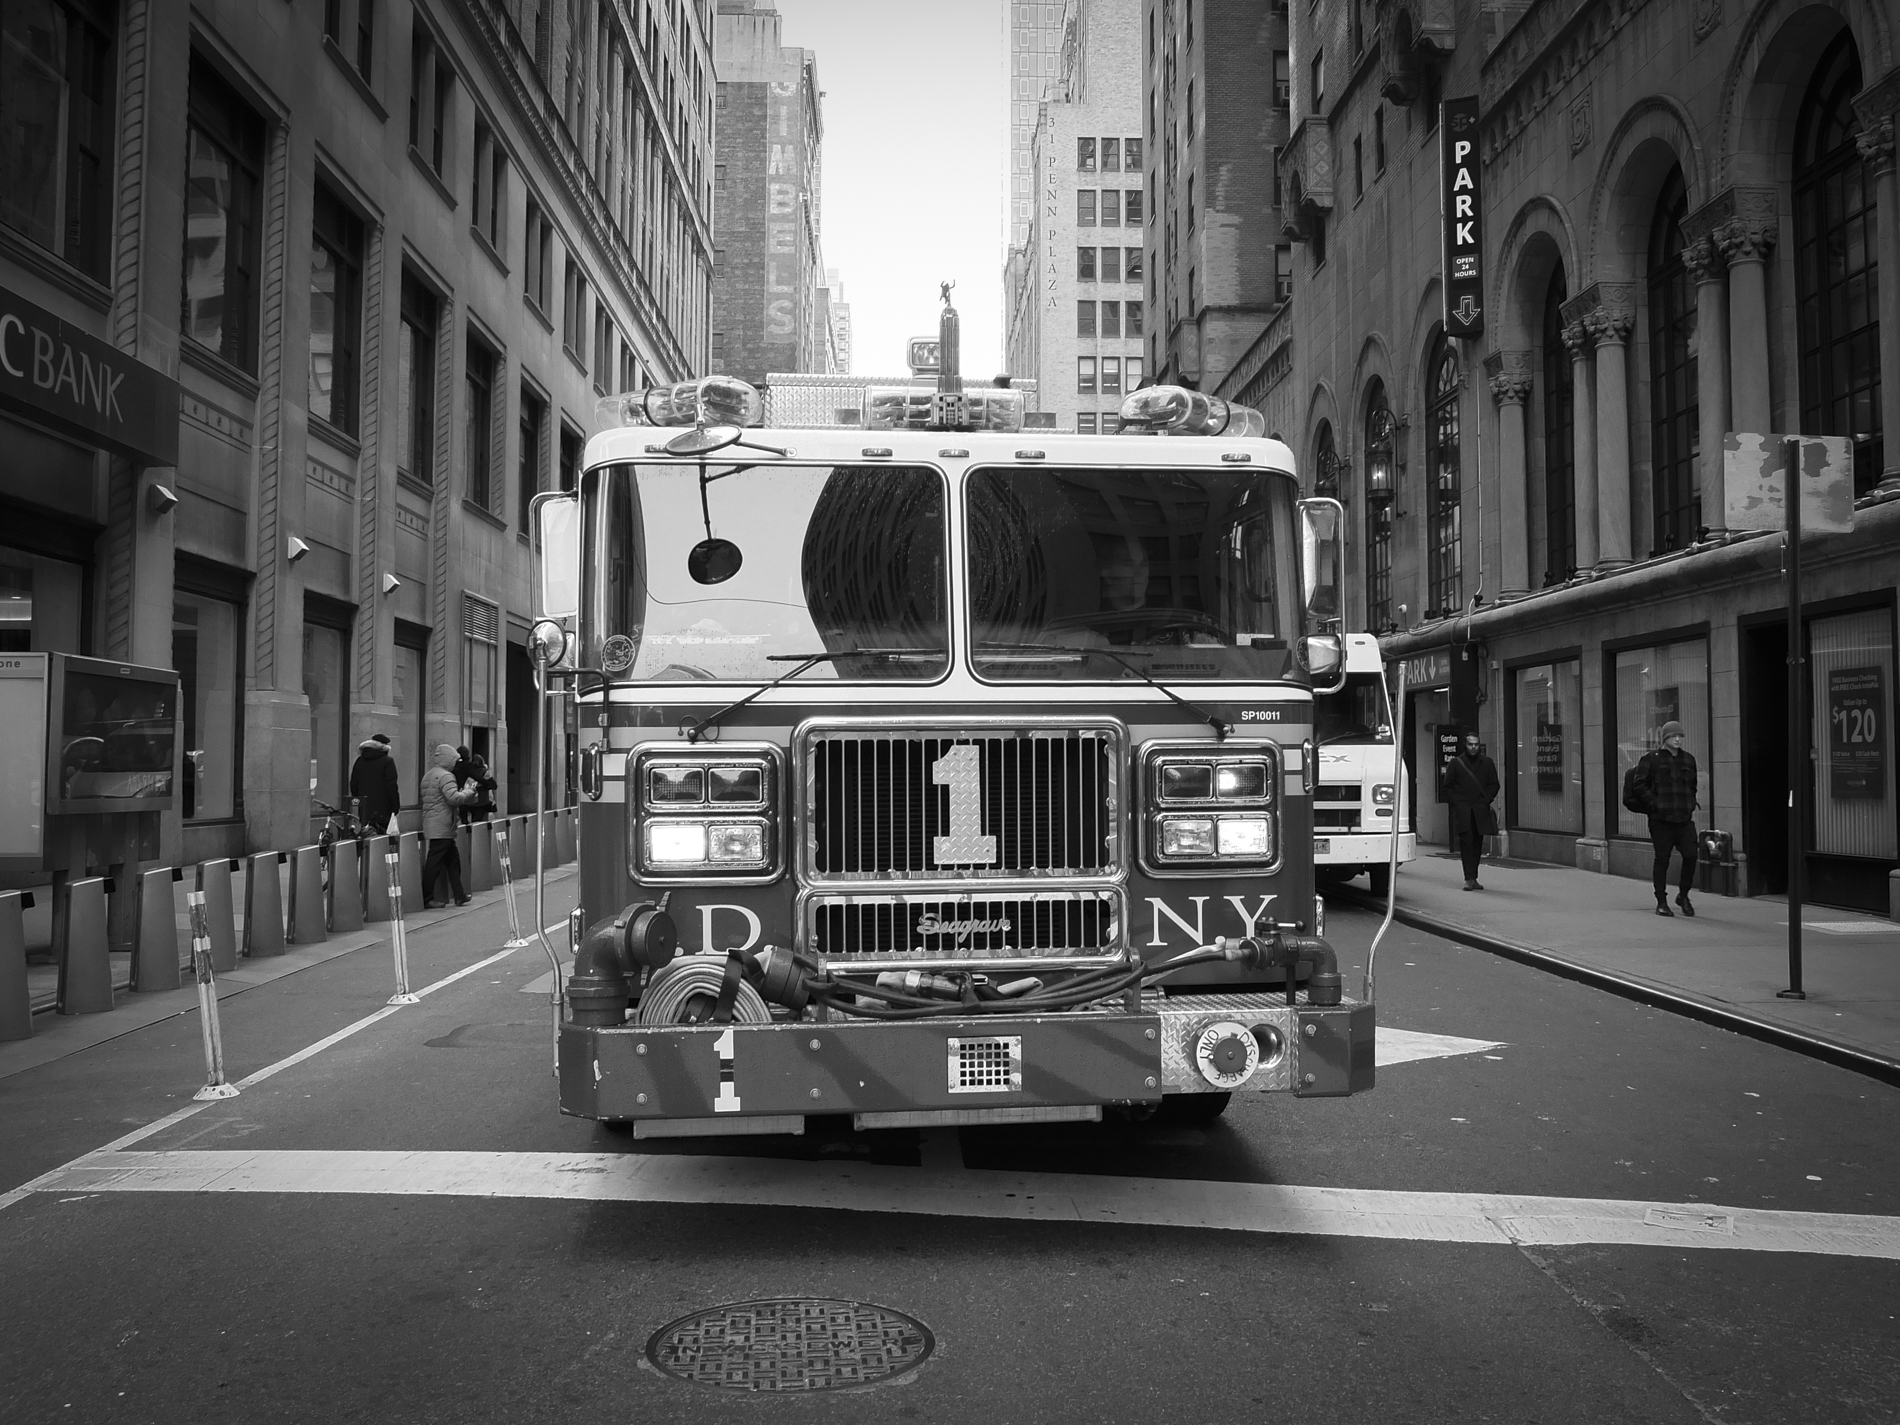 New York Fire Department on the road in Manhattan